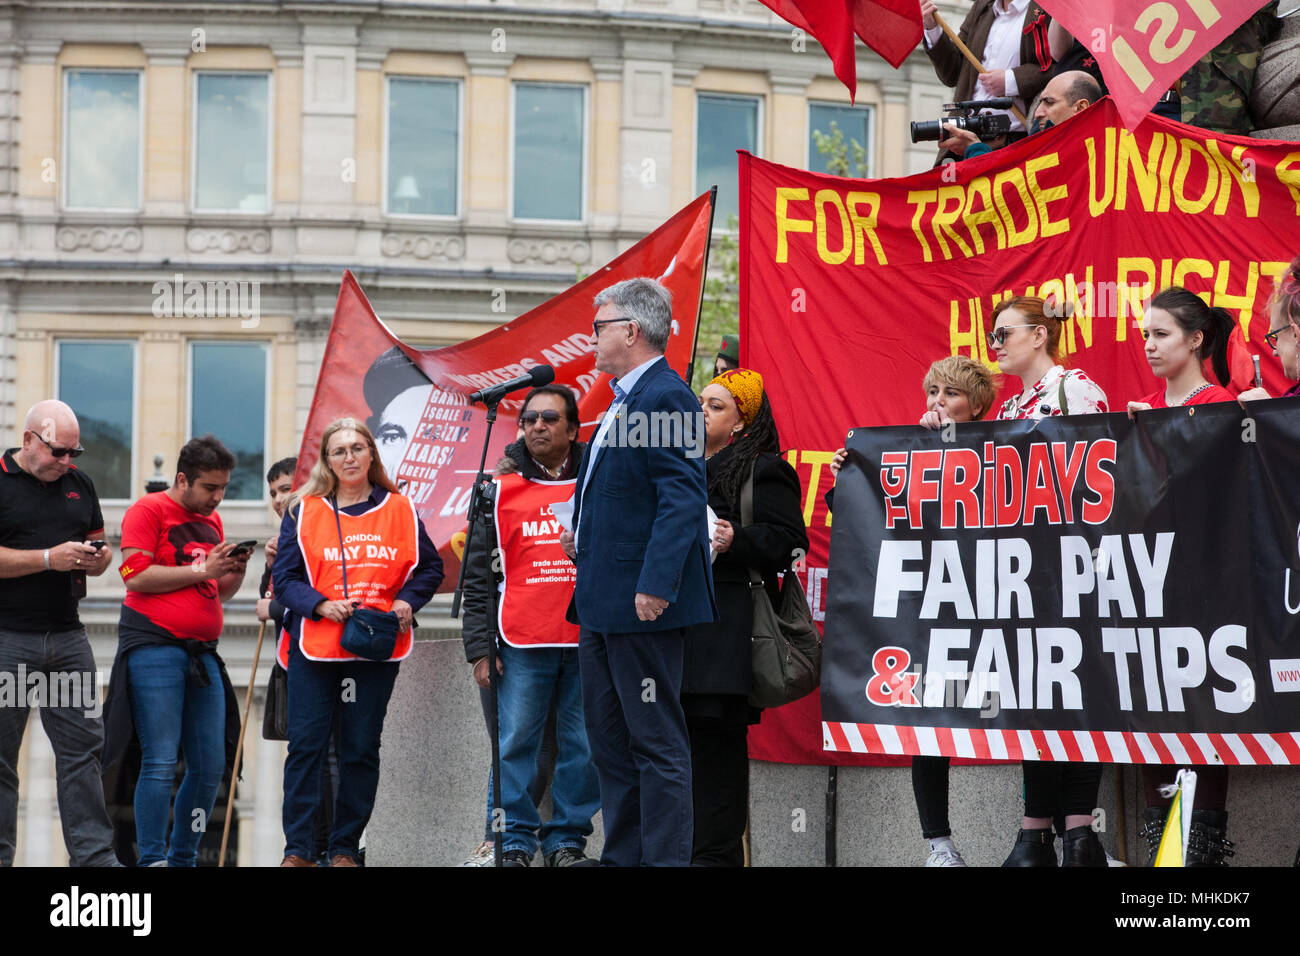 London, UK. 1st May, 2018. Mick Cash, General Secretary of the RMT trade union, addresses representatives of trade unions and socialist and communist parties from many different countries taking part in the annual May Day rally in Trafalgar Square to mark International Workers' Day. Credit: Mark Kerrison/Alamy Live News - Stock Image